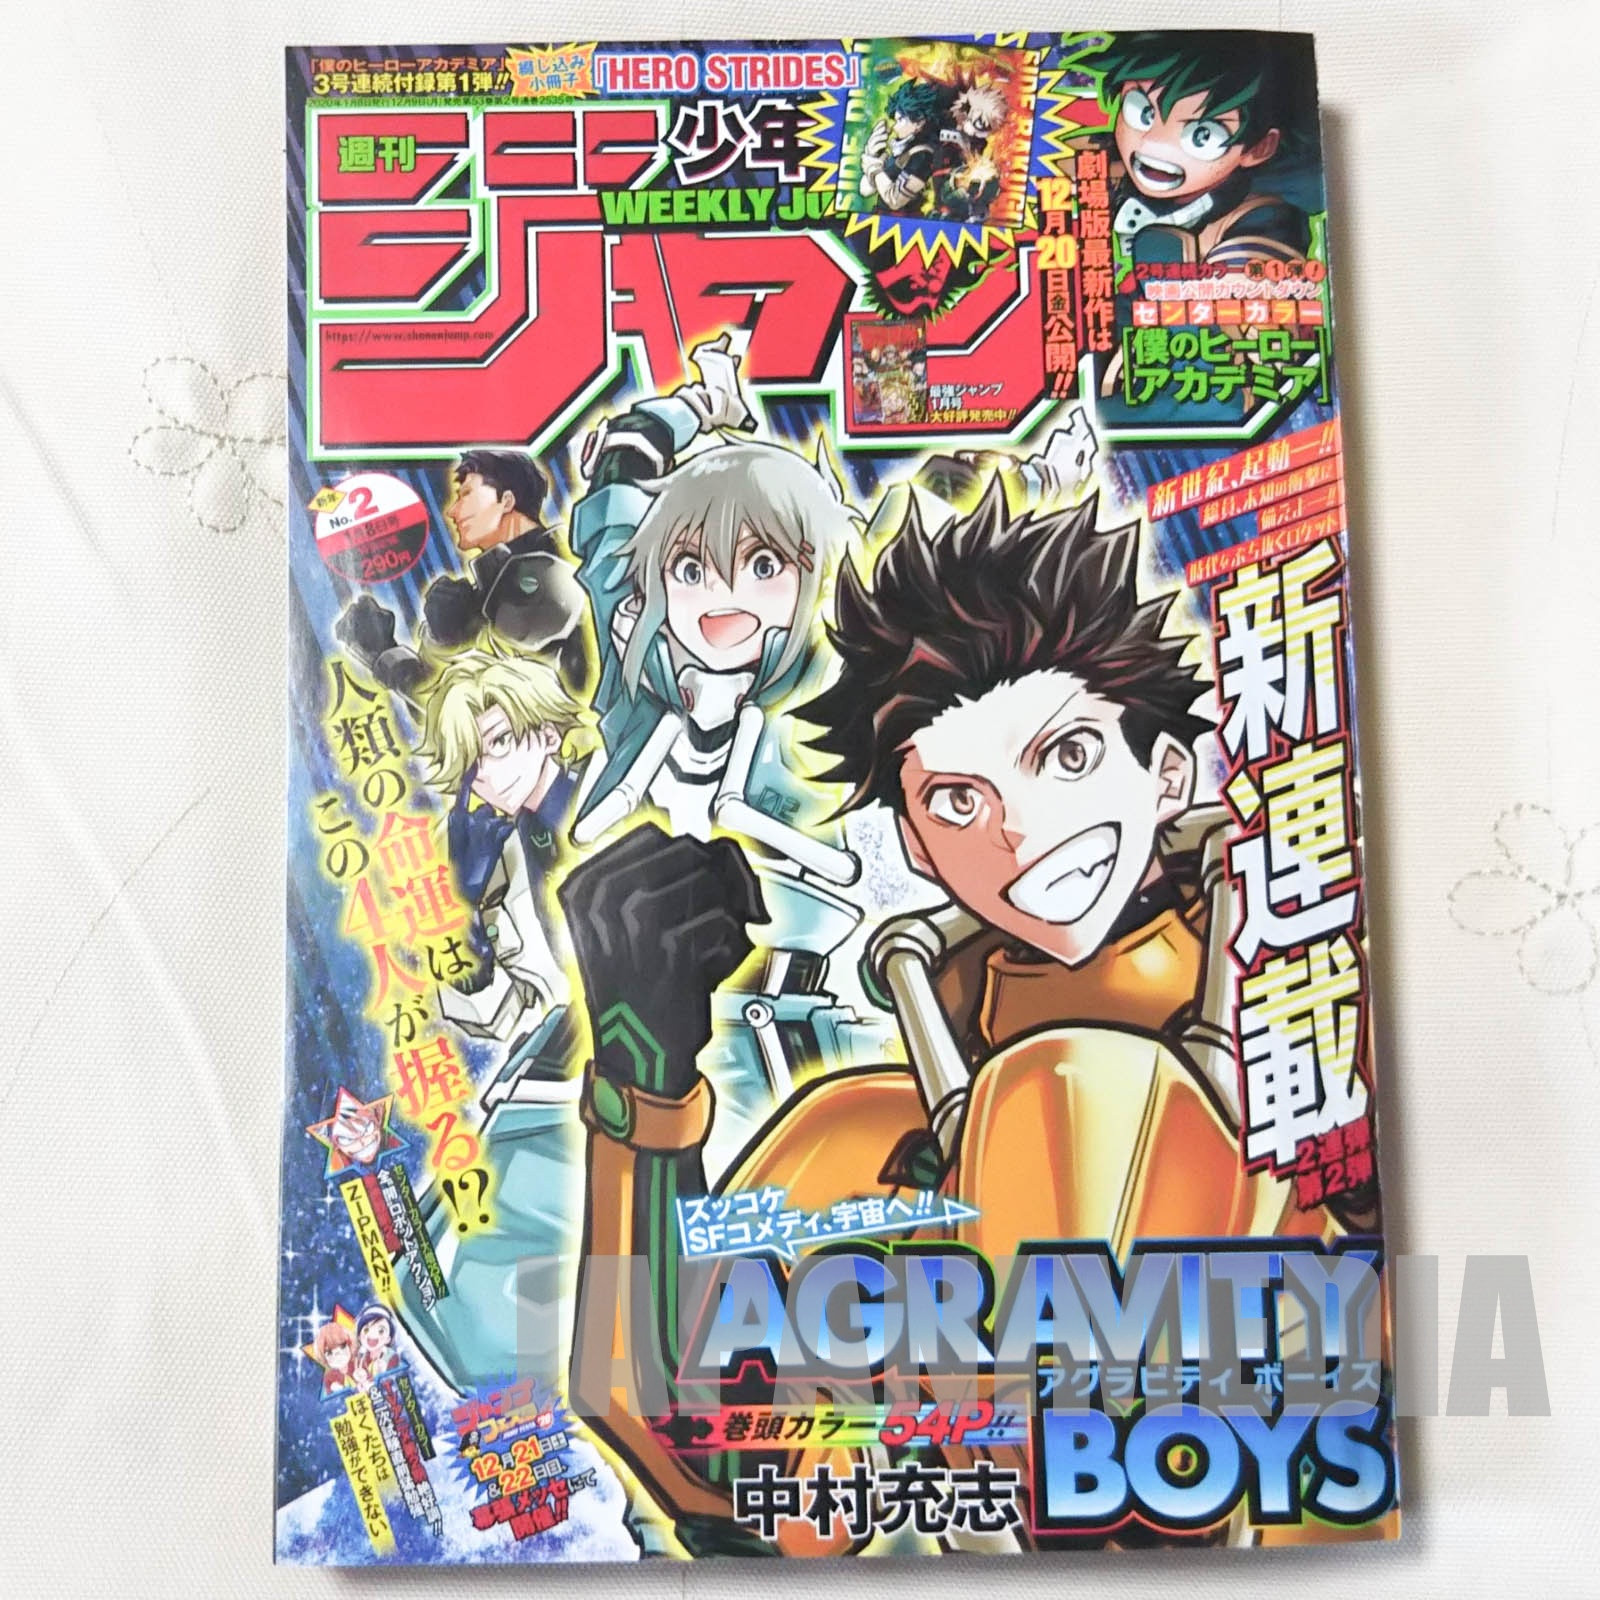 Weekly Shonen JUMP Vol.02 2020 Agravity boys / Japanese Magazine JAPAN MANGA